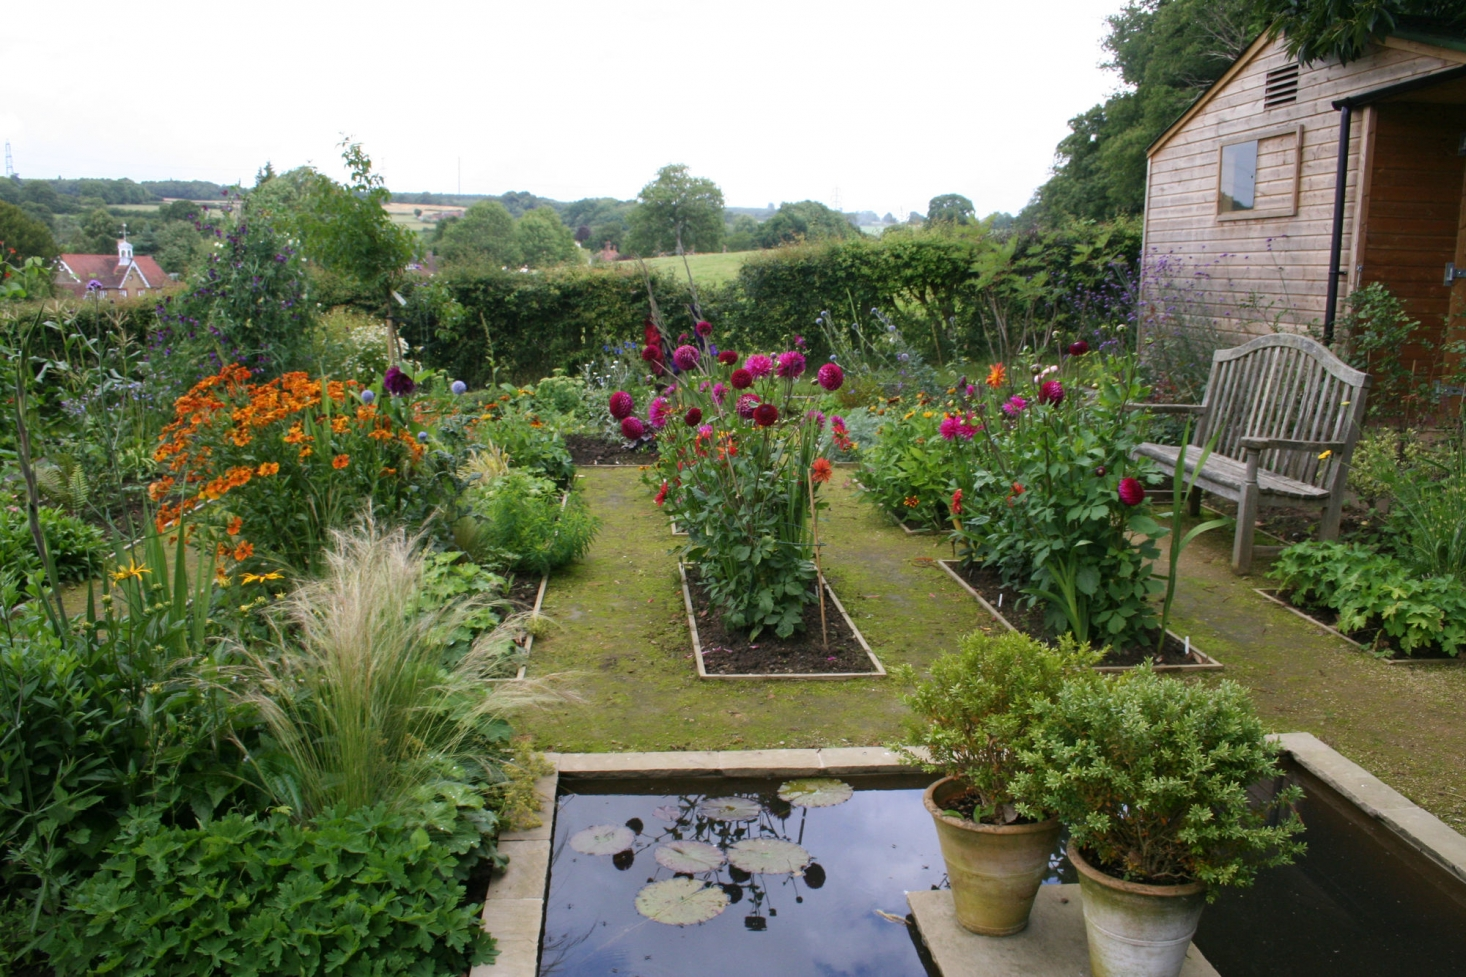 annie guilfoyleu0027s kitchen garden includes beds of colorful